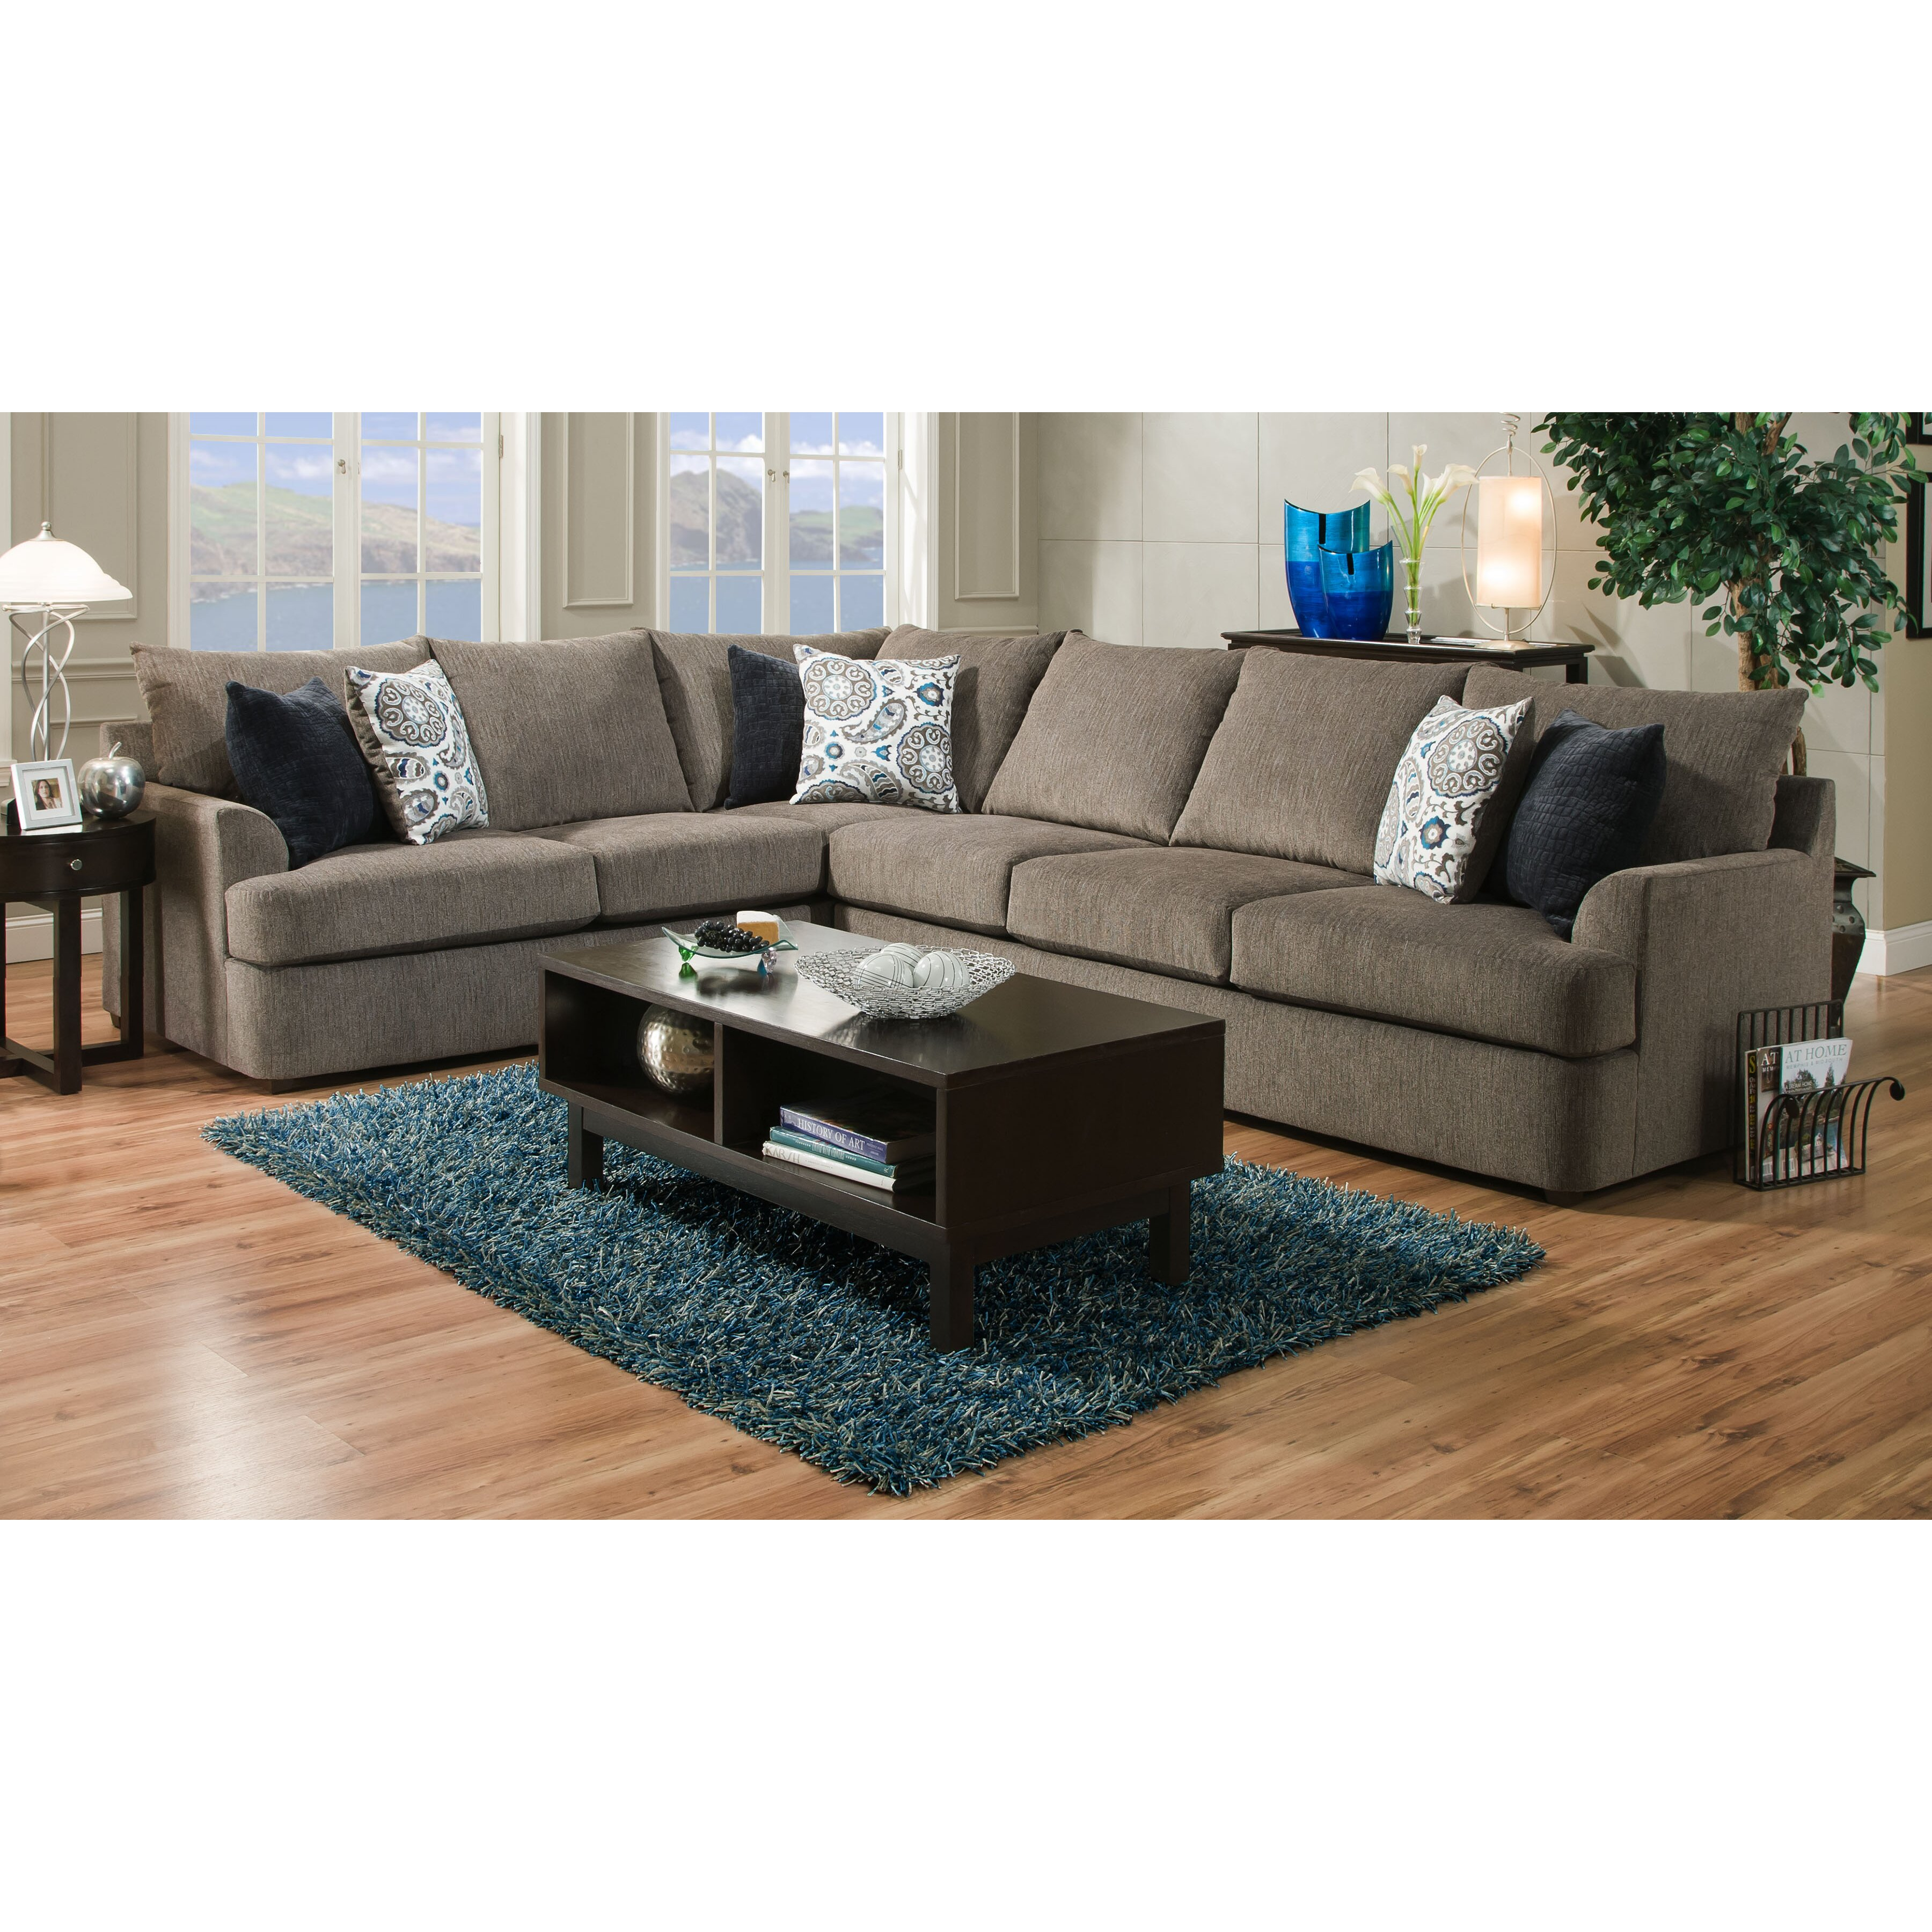 Simmons Upholstery Grandstand Sectional Reviews Wayfair